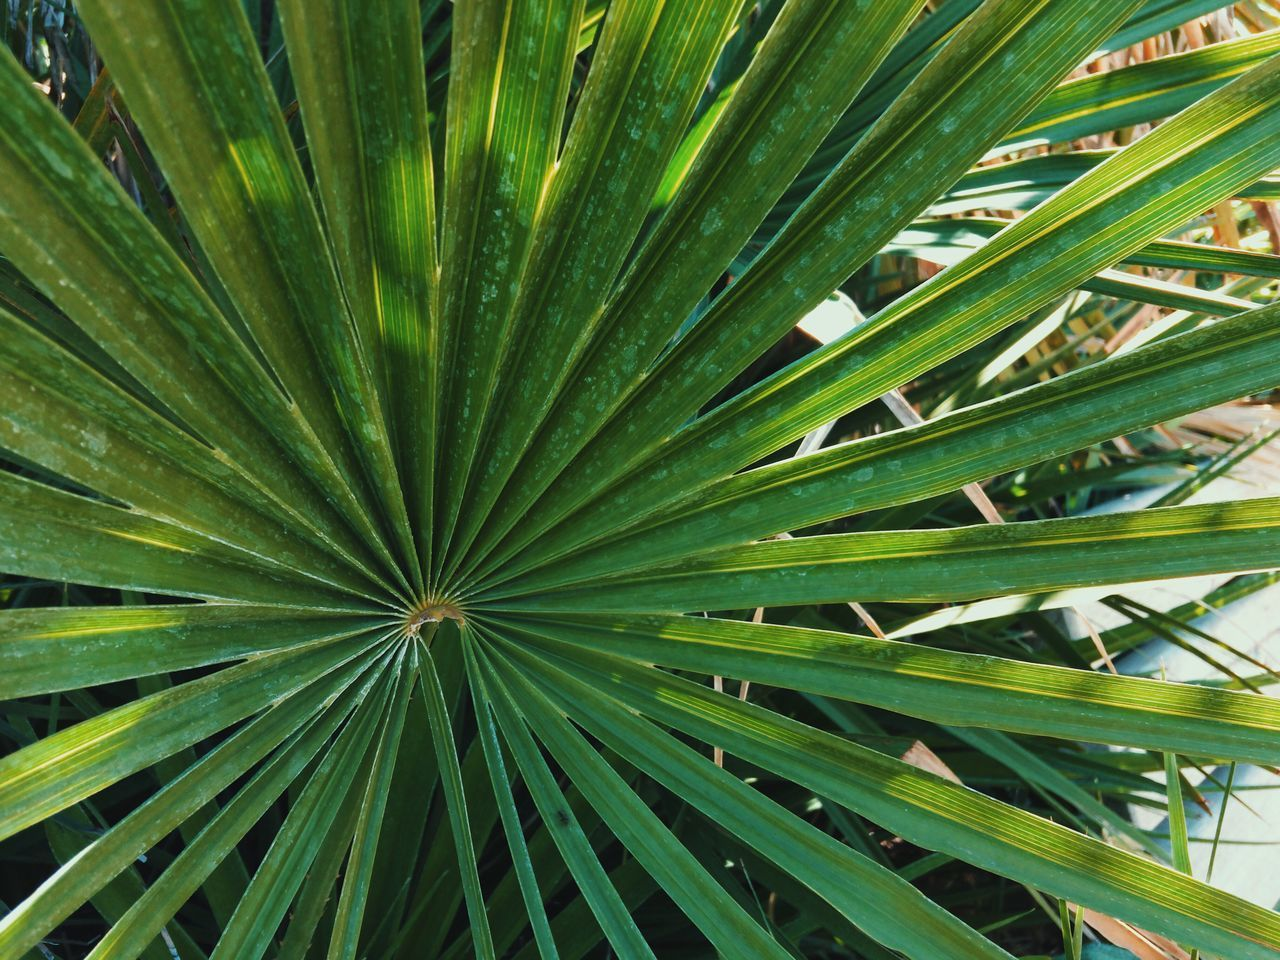 Palm tree 🌴... Leaf Growth Backgrounds Green Color Full Frame Nature Plant Beauty In Nature No People Palm Tree Day Outdoors Close-up Botanical Garden Freshness Details Of My Life Exotic Freshness Green VSCO Tropical Colorful Summer Enjoying Life Mobile